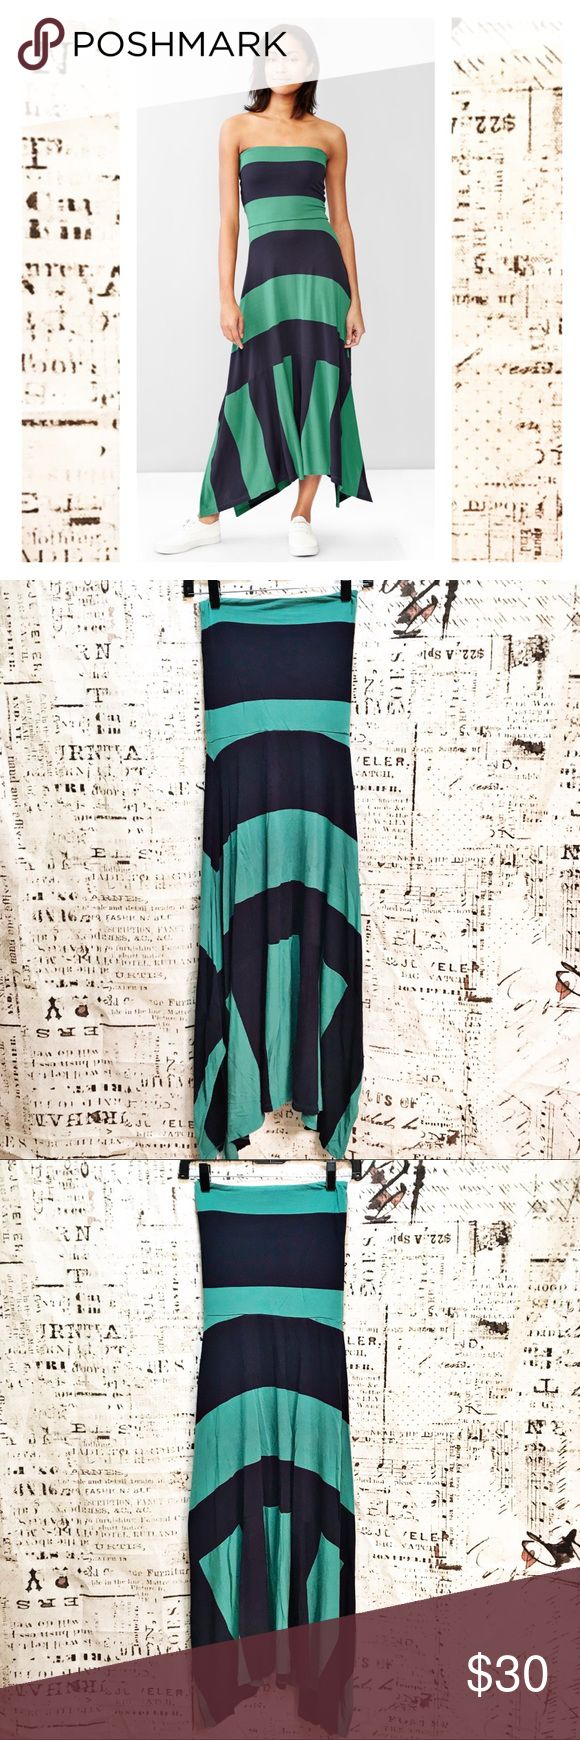 GAP 4 in 1 Tube Dress Green Navy Stripe Block This tube dress by GAP is so comfortable and versatile! Style is 4 in 1 dress - so many different ways to wear! 100% viscose. So cute! Striped upper with color block skirt, navy and green. GAP Dresses Maxi